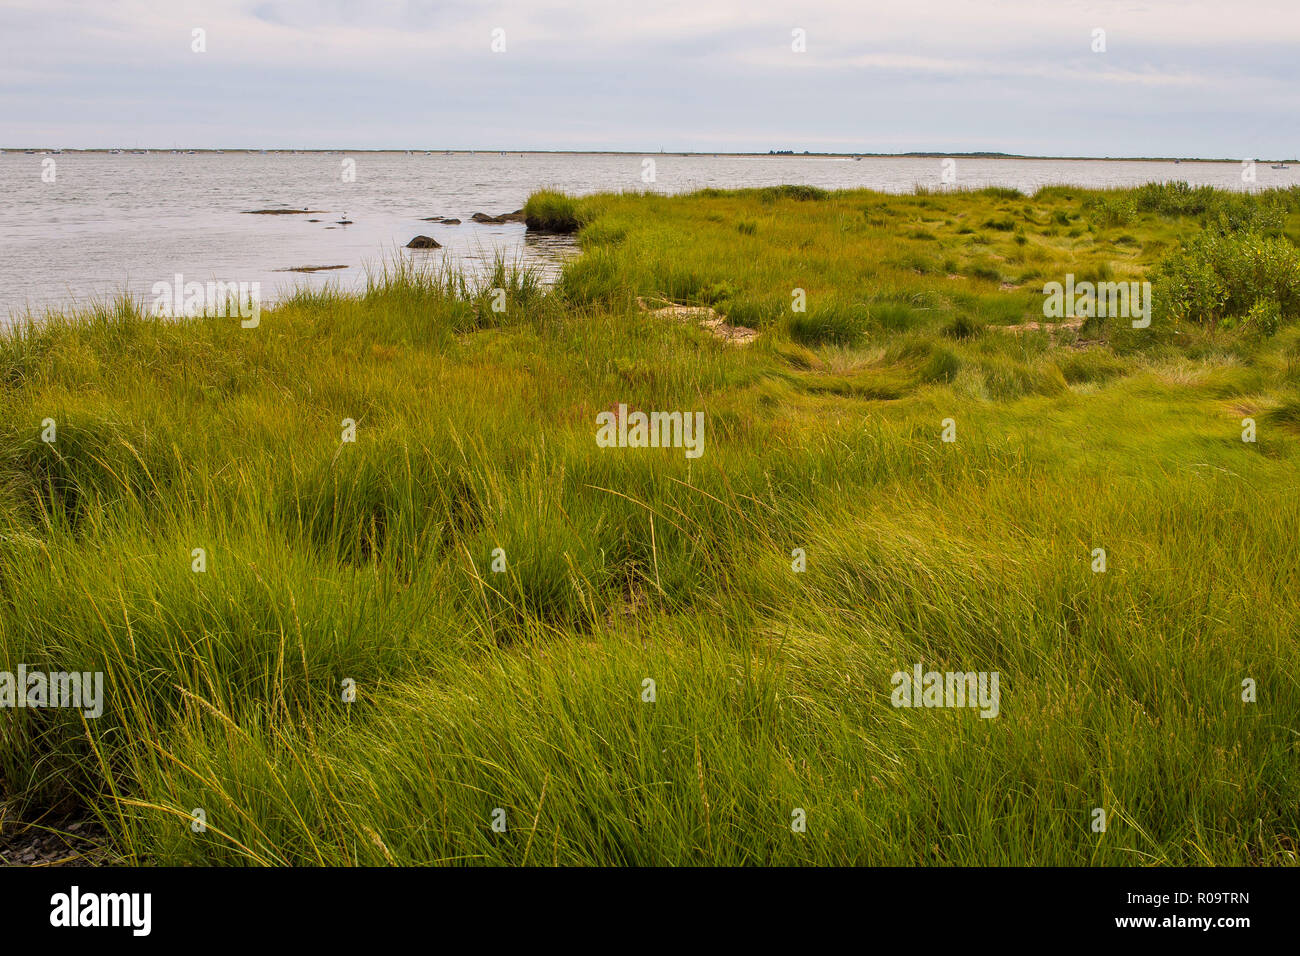 Contains, 11,000 Acres on Narragansett Bay on CT and RI State Borders. Nesting habitat for birds and other wildlife. Great spot for families. - Stock Image